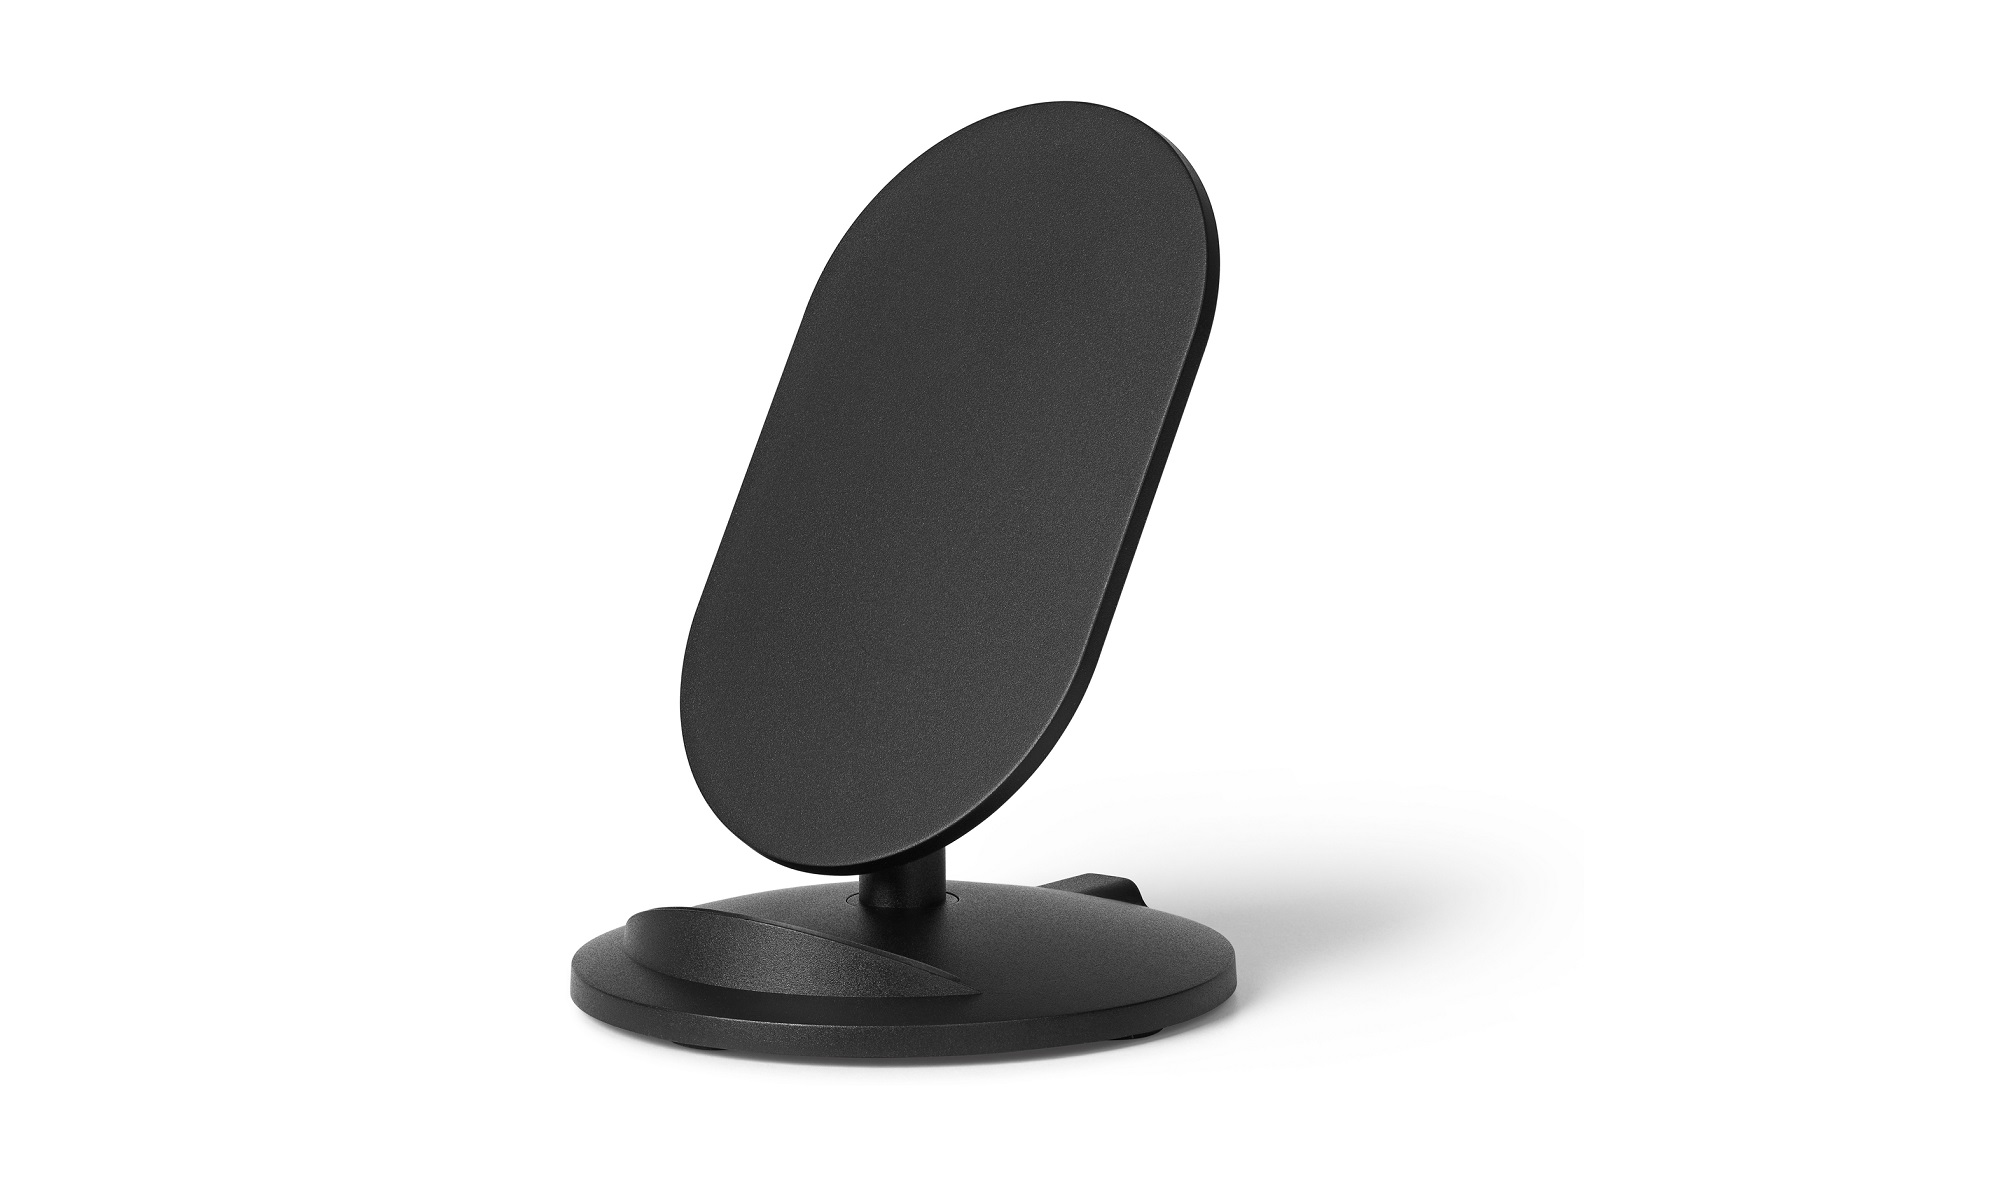 Stand de incarcare Wireless Fast charger pentru Samsung Galaxy S9, S9 Plus, Galaxy Note 8, S8, S8+, S7, S7 Edge, S6, iPhone X, iPhone 8, 8 plus